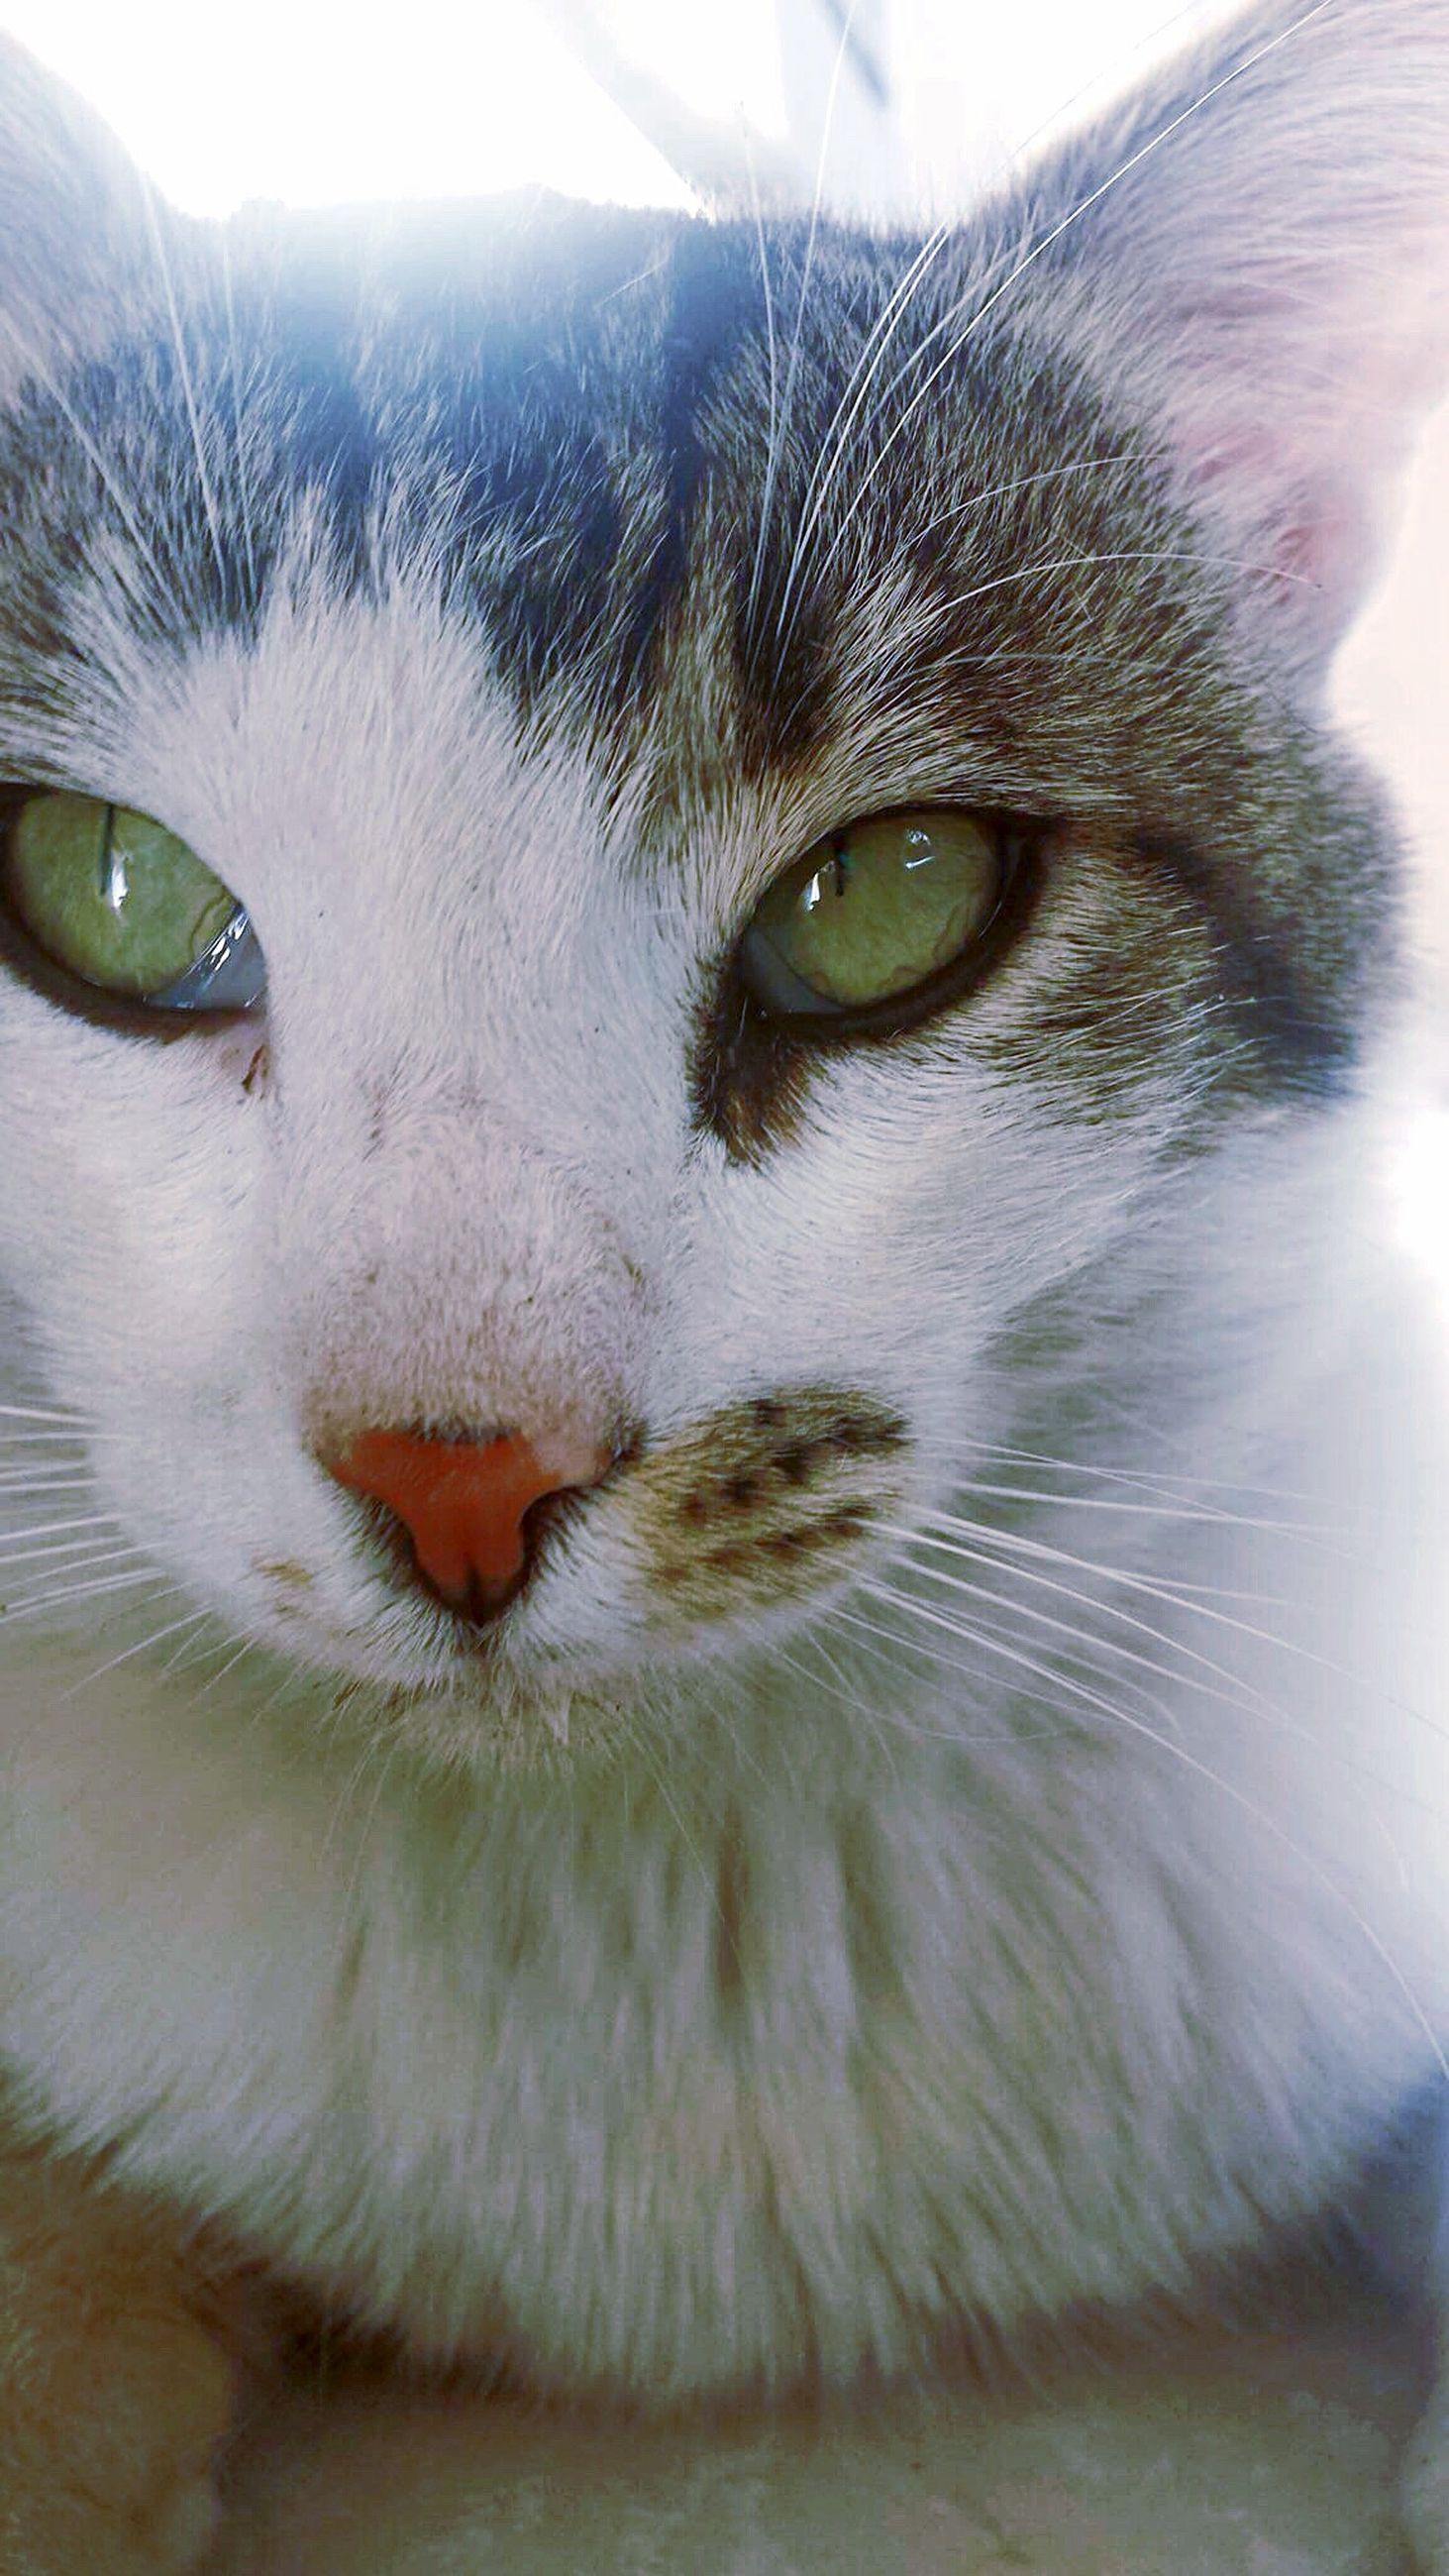 pets, domestic animals, domestic cat, one animal, cat, animal themes, mammal, feline, portrait, looking at camera, whisker, animal eye, close-up, indoors, animal head, staring, alertness, animal body part, front view, focus on foreground